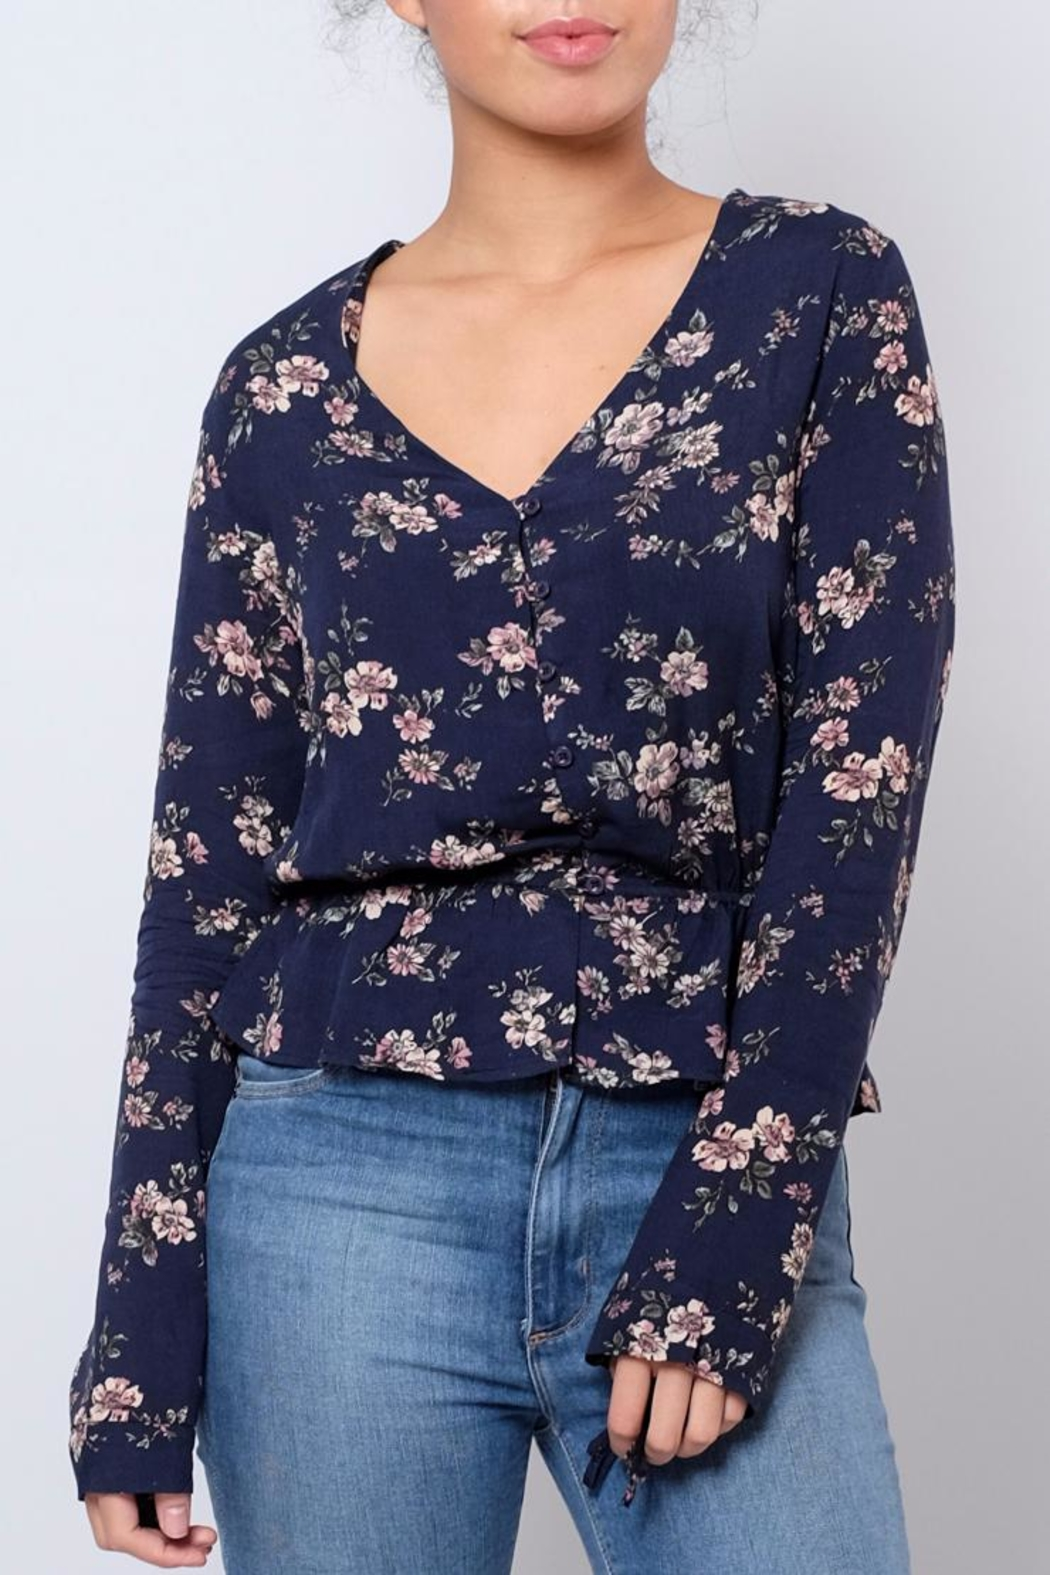 Everly Floral V Neck Blouse - Main Image